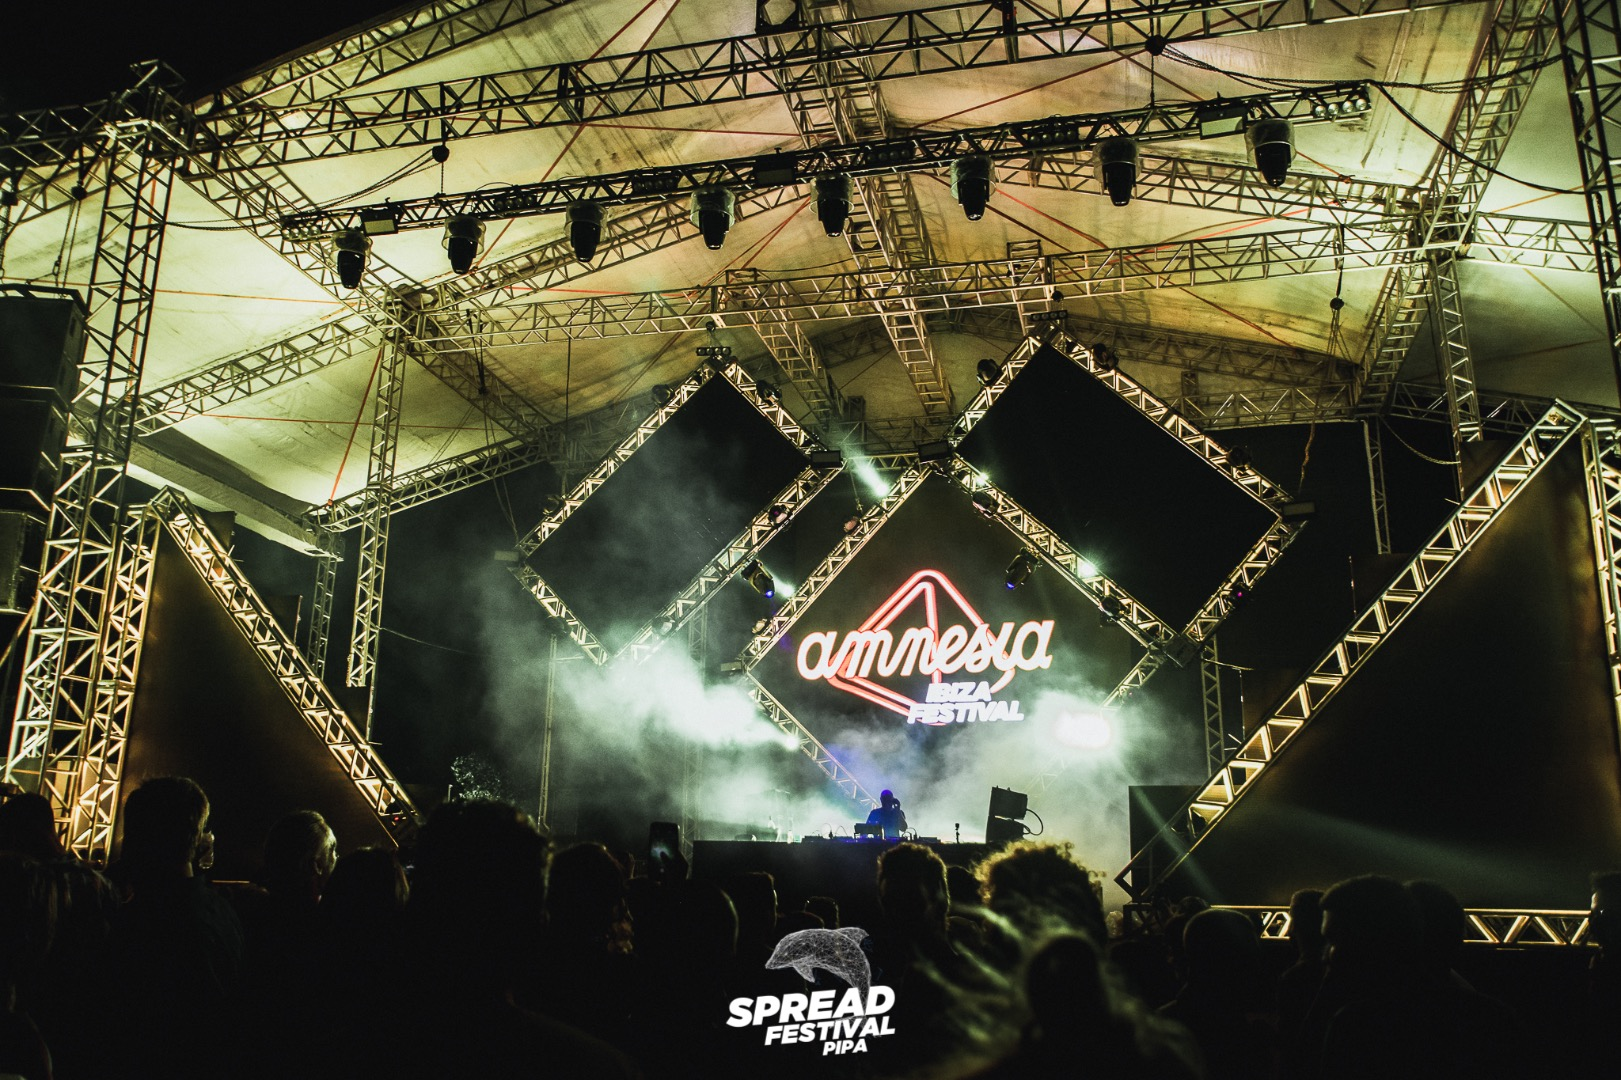 Amnesia goes to Spread Festival